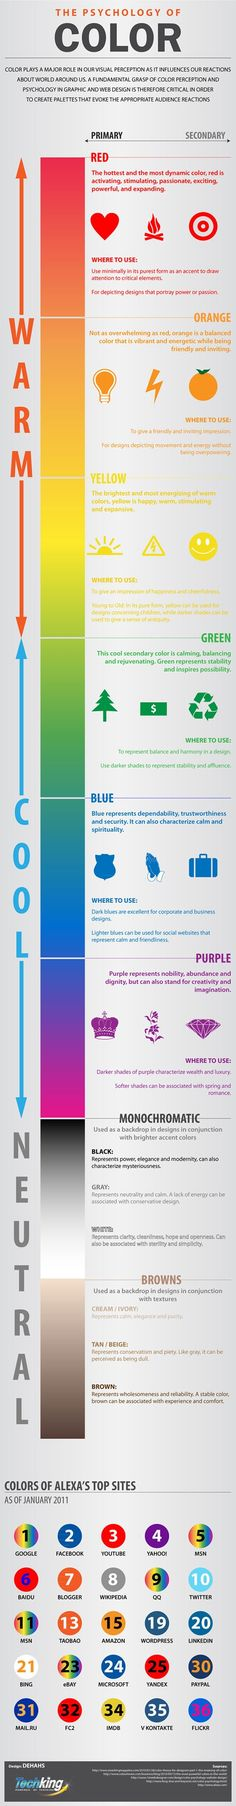 UX/UI Design / The Psychology of Color